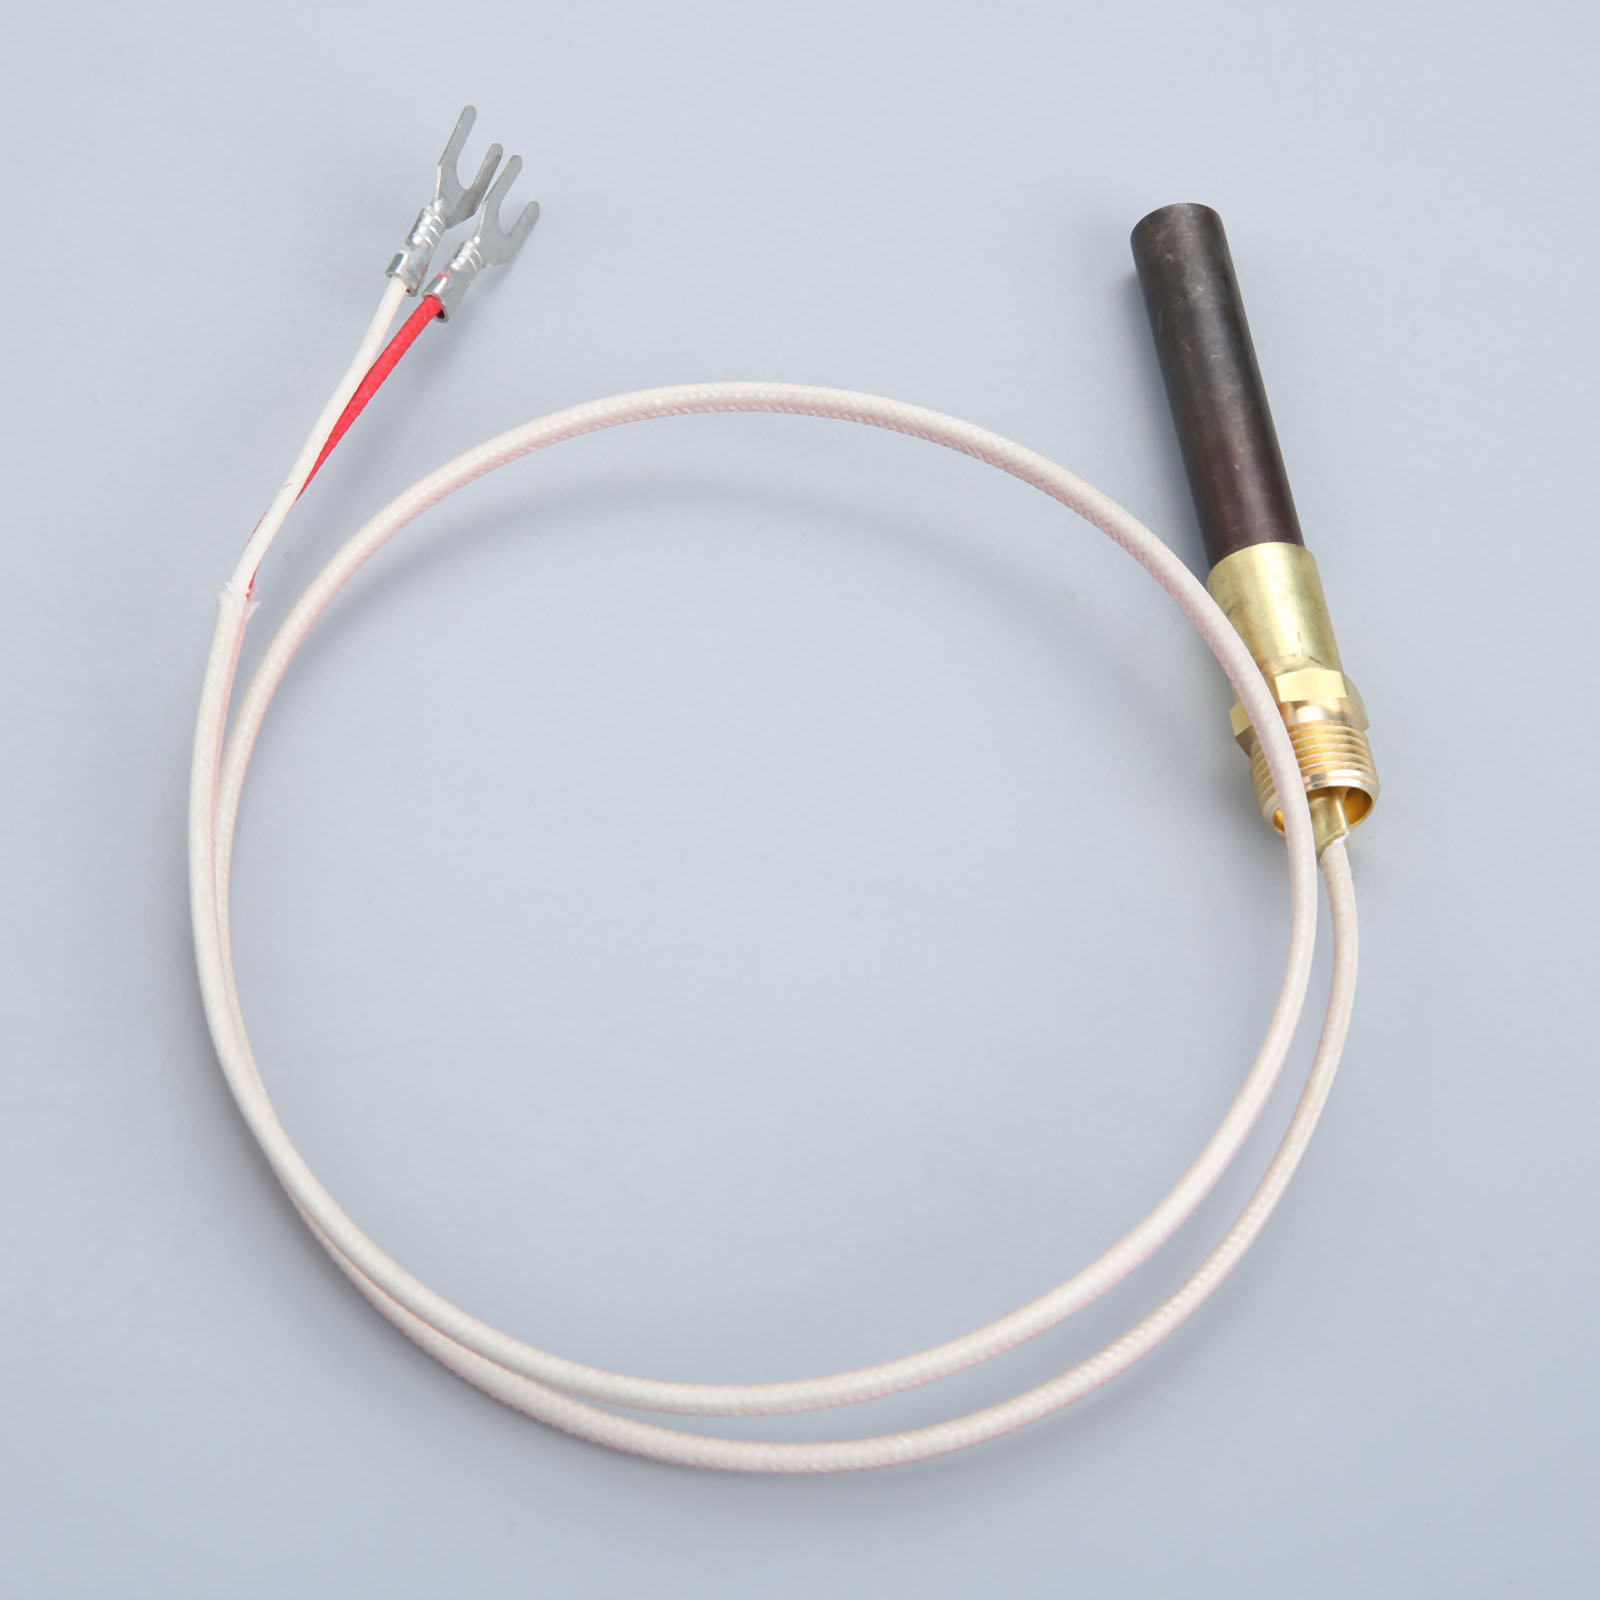 750 24 Fireplace Millivolt Replacement Thermopile Generators Used on Gas Water Heater Fryer Cluster thermocouple